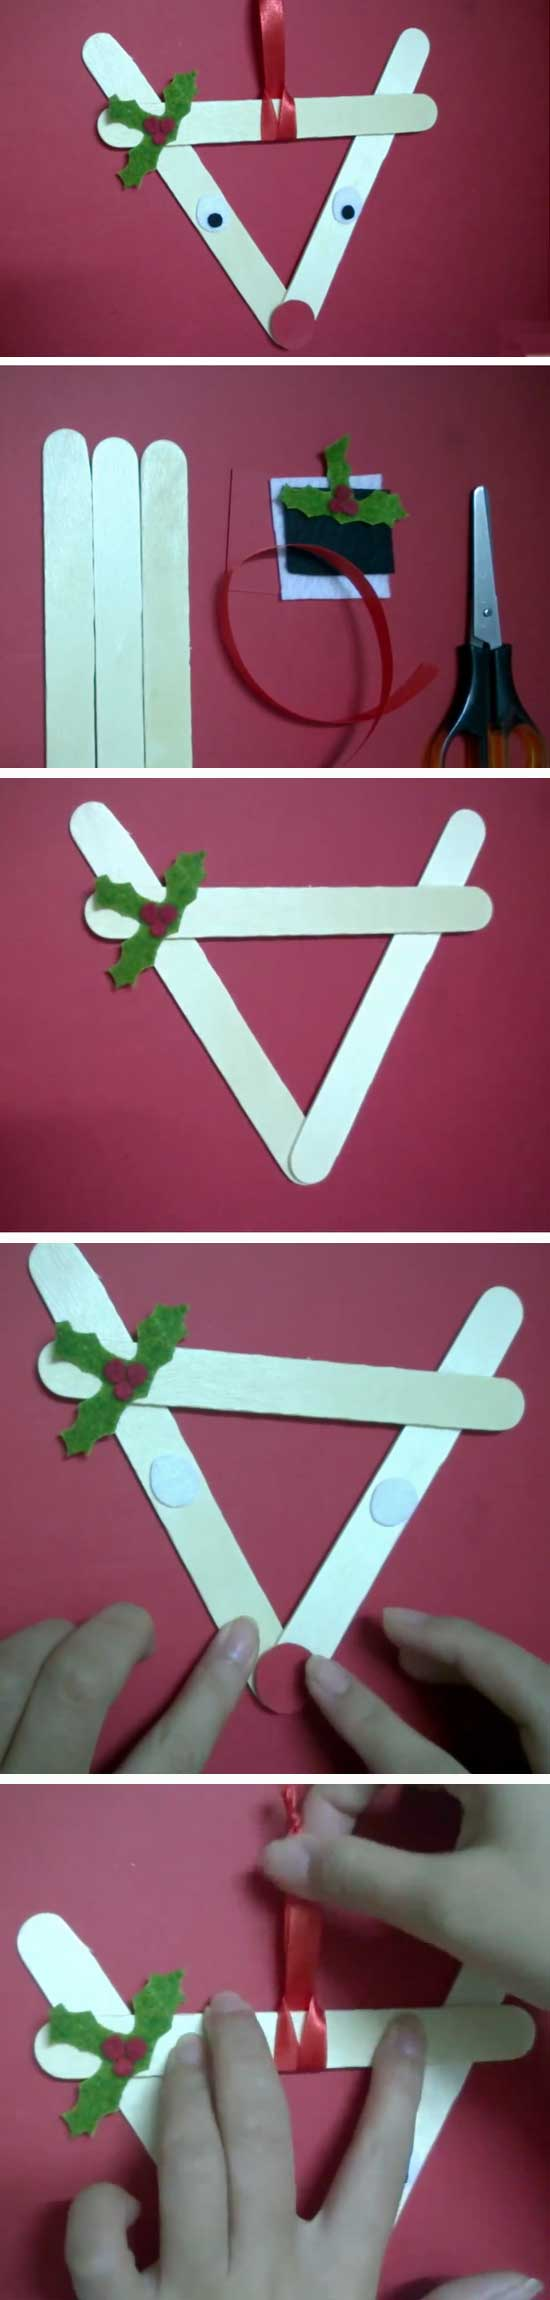 15 DIY Ideas and Tutorials to Recycle Popsicle Sticks for Christmas